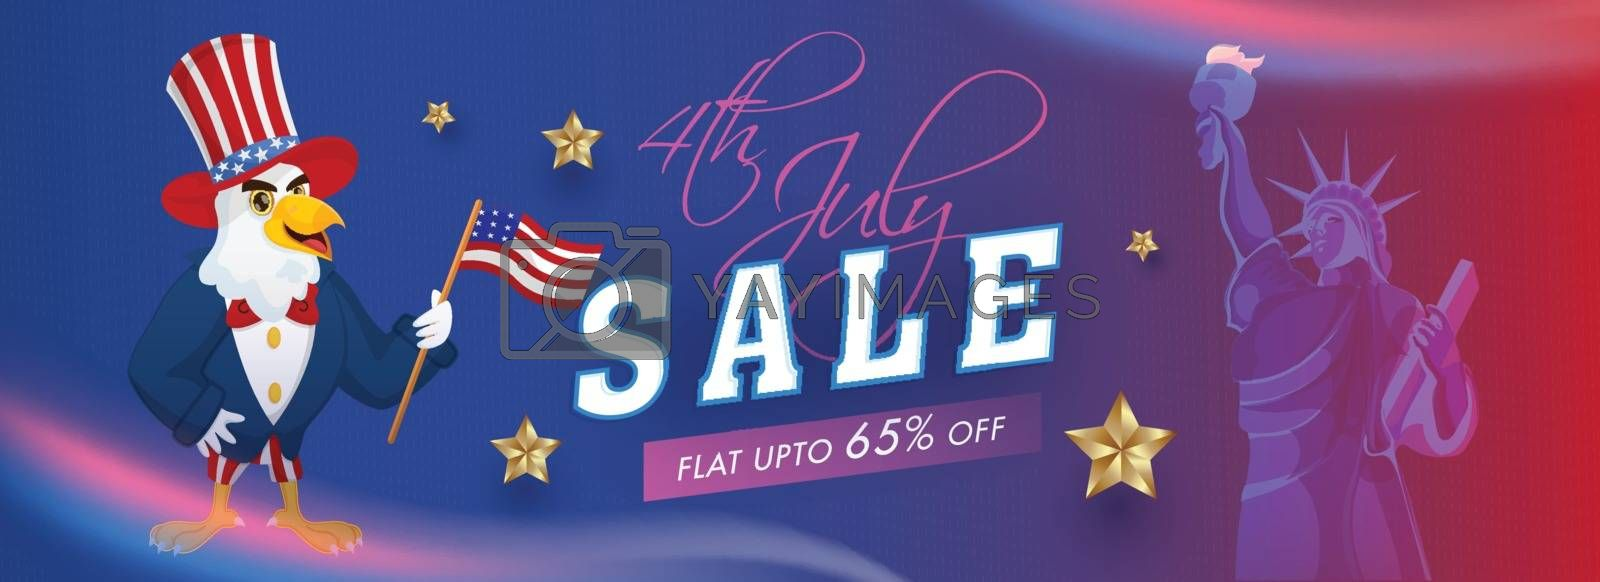 4th Of July Sale header or banner design with 65% discount offer, Statue of liberty and Eagle cartoon character.